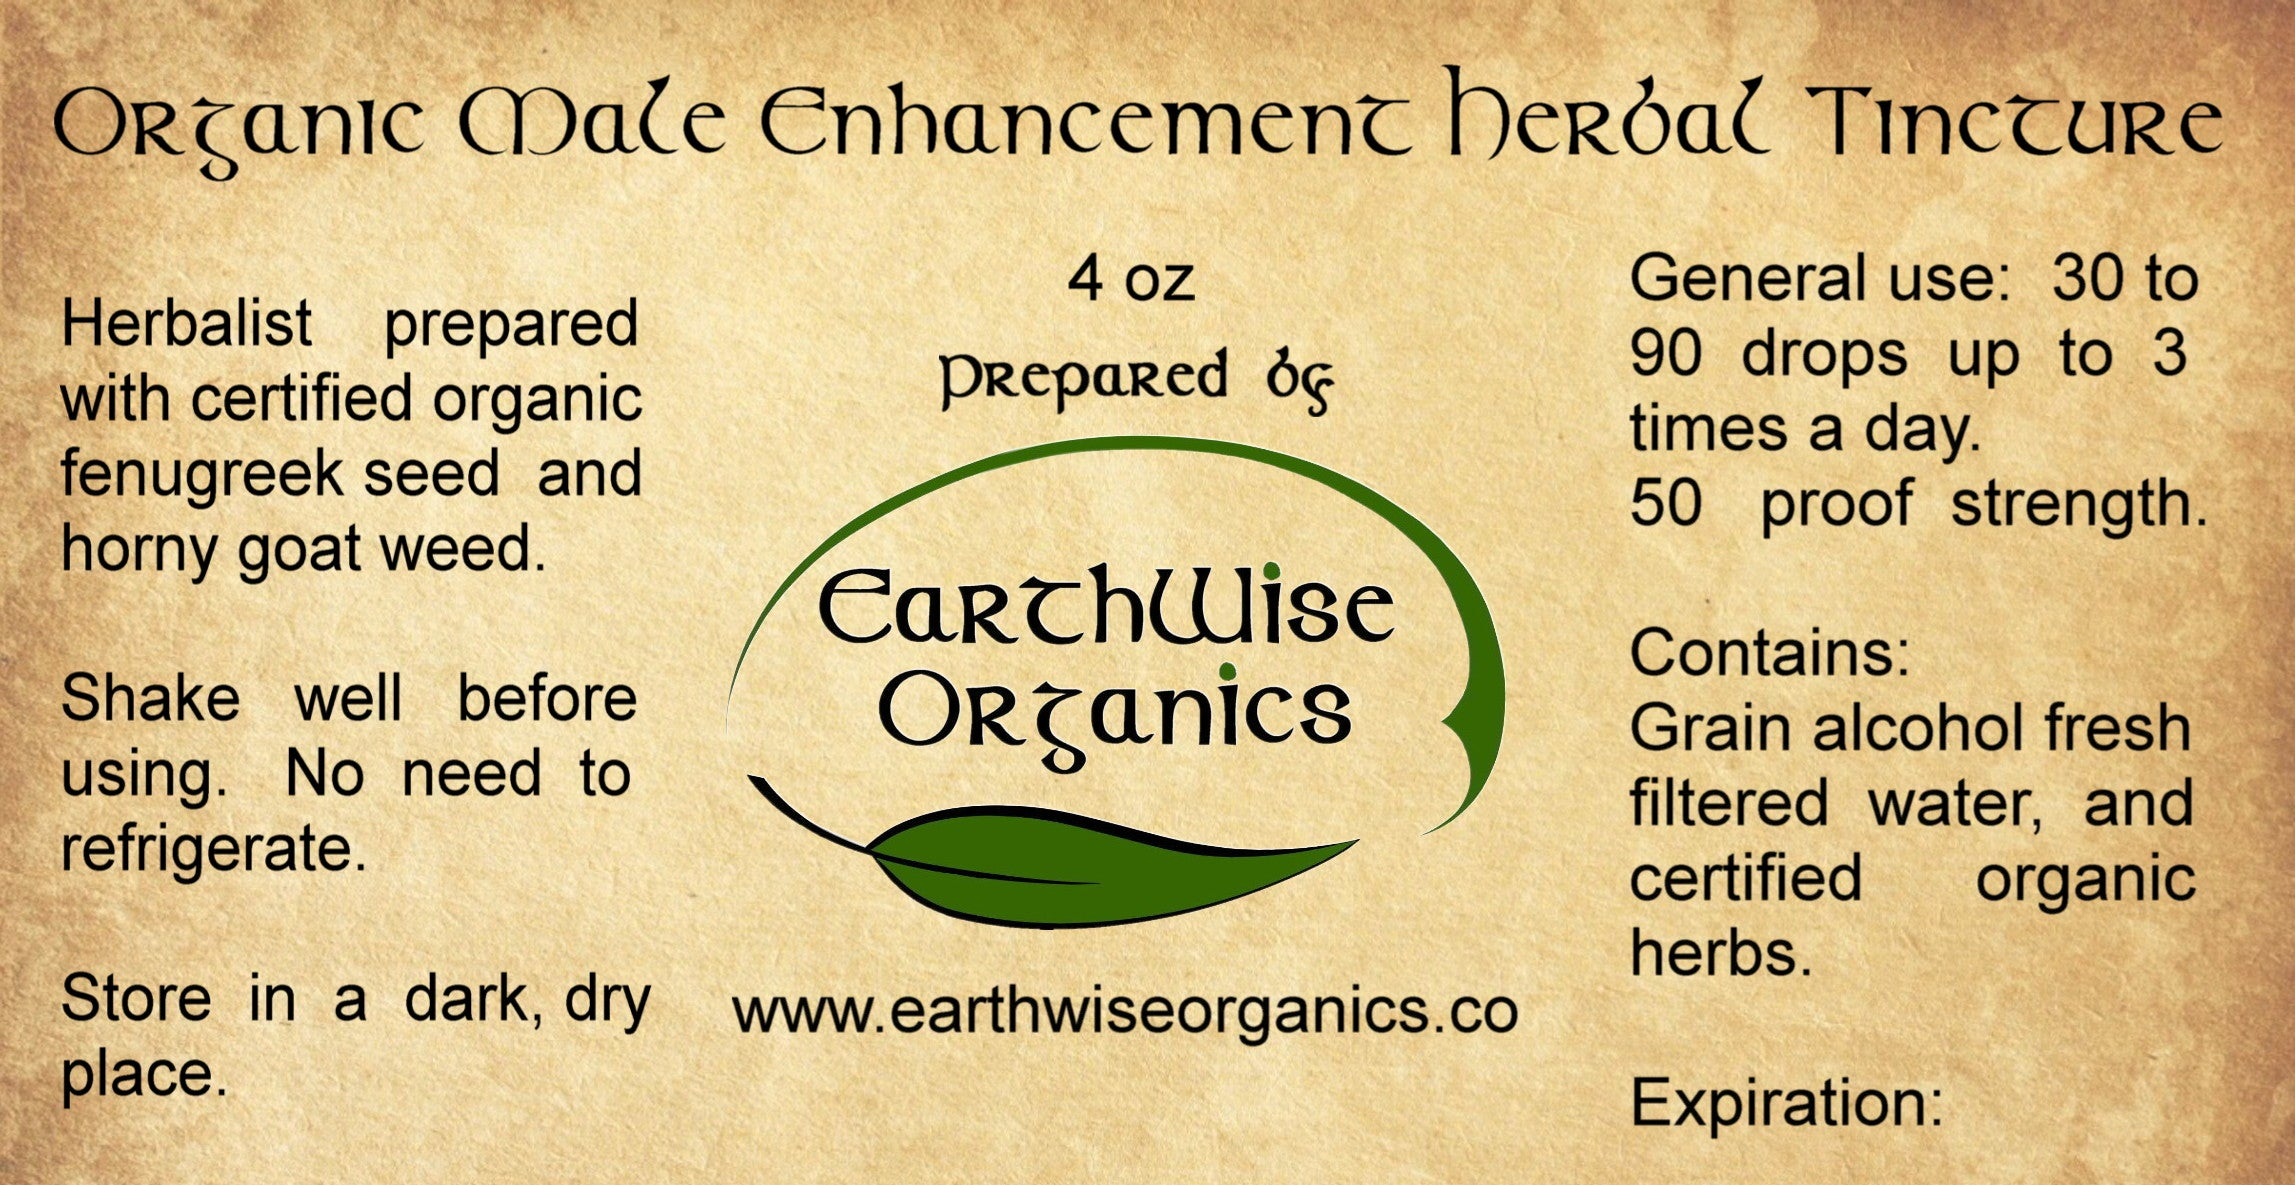 male enhancement organic herbal tincture label